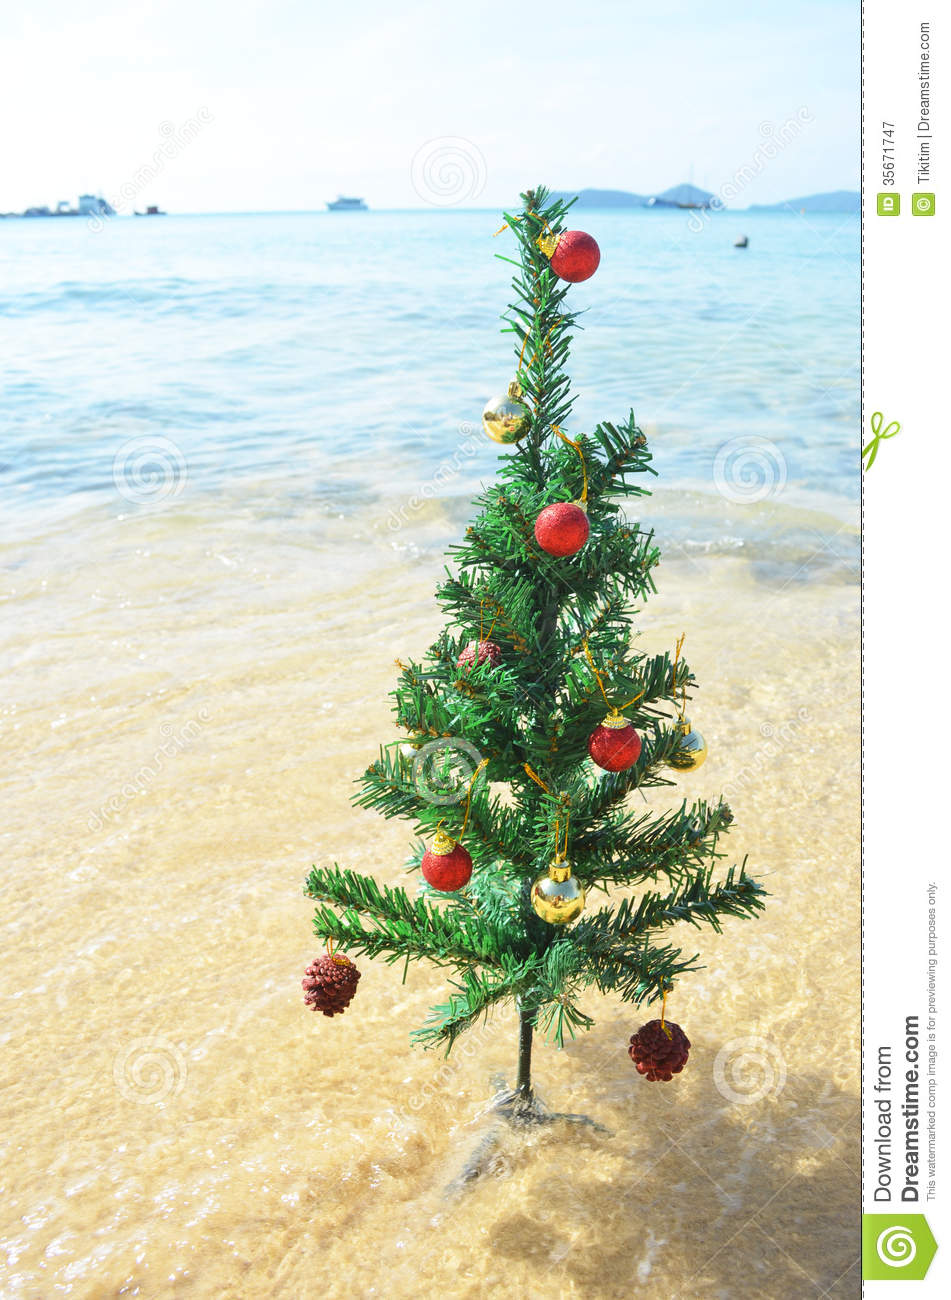 Christmas Tree Stock Image Image Of Bright Tree Holiday